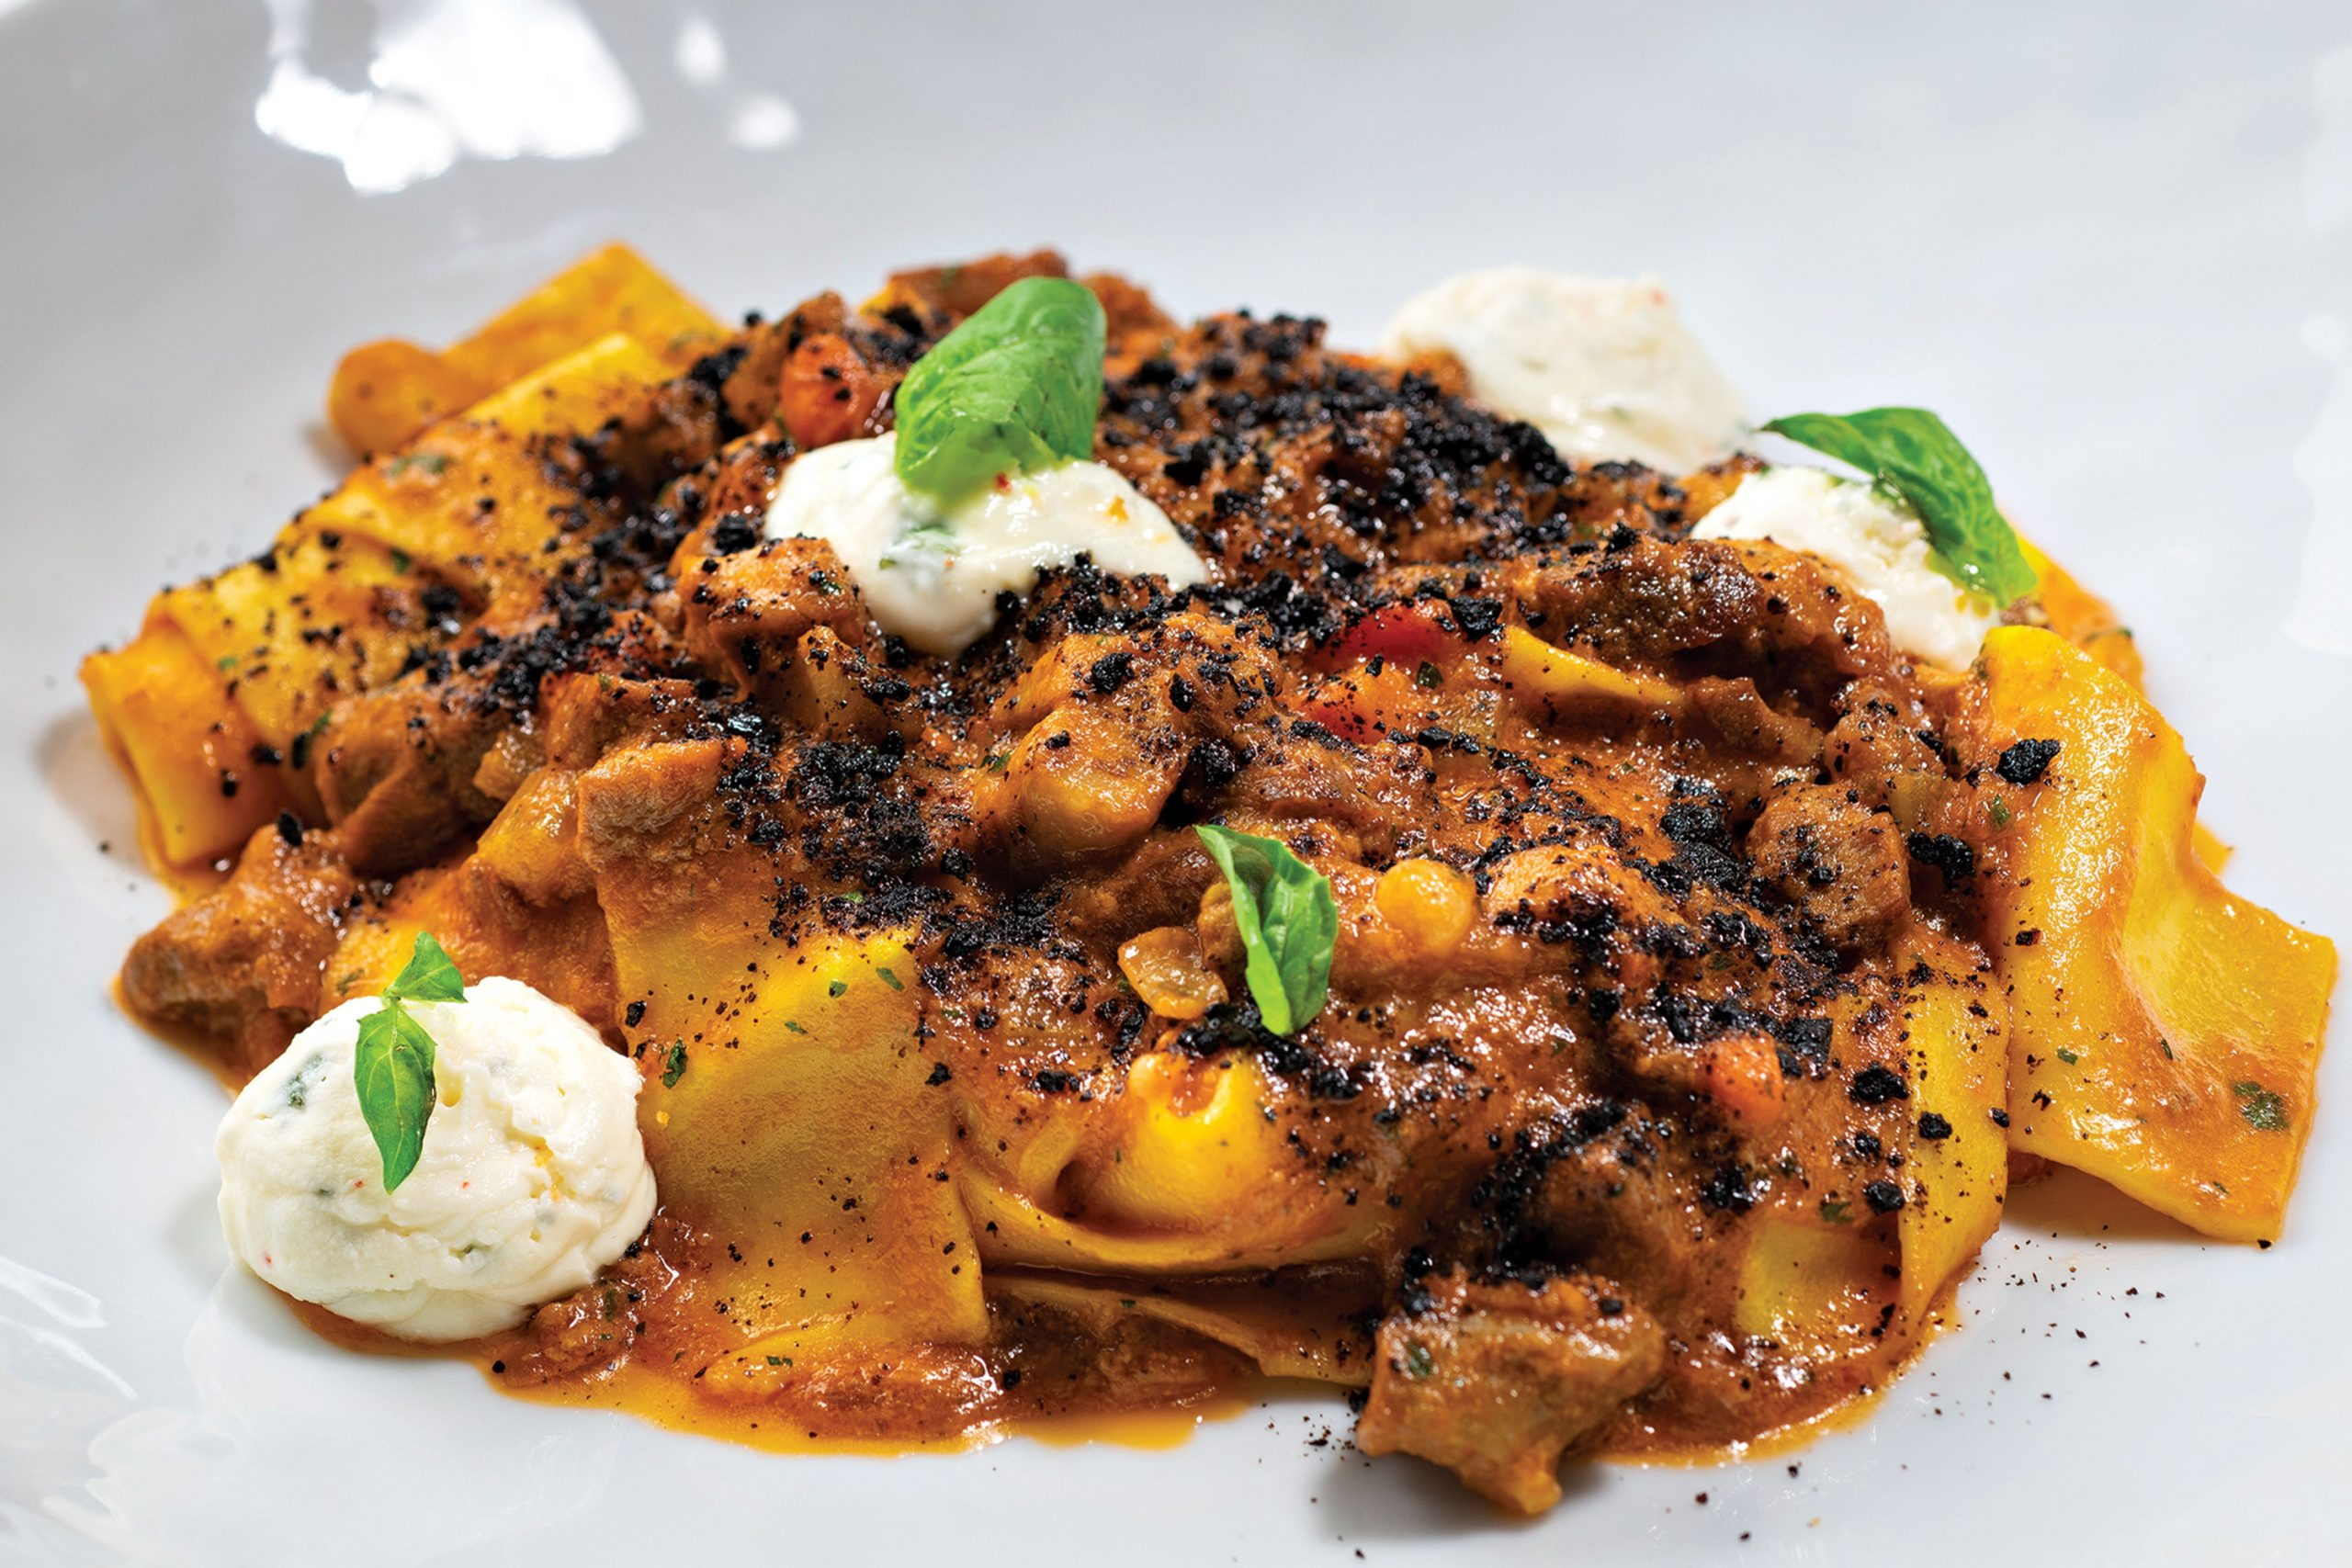 Pappardelle with milk-braised lamb; Photo by Rob Ballard